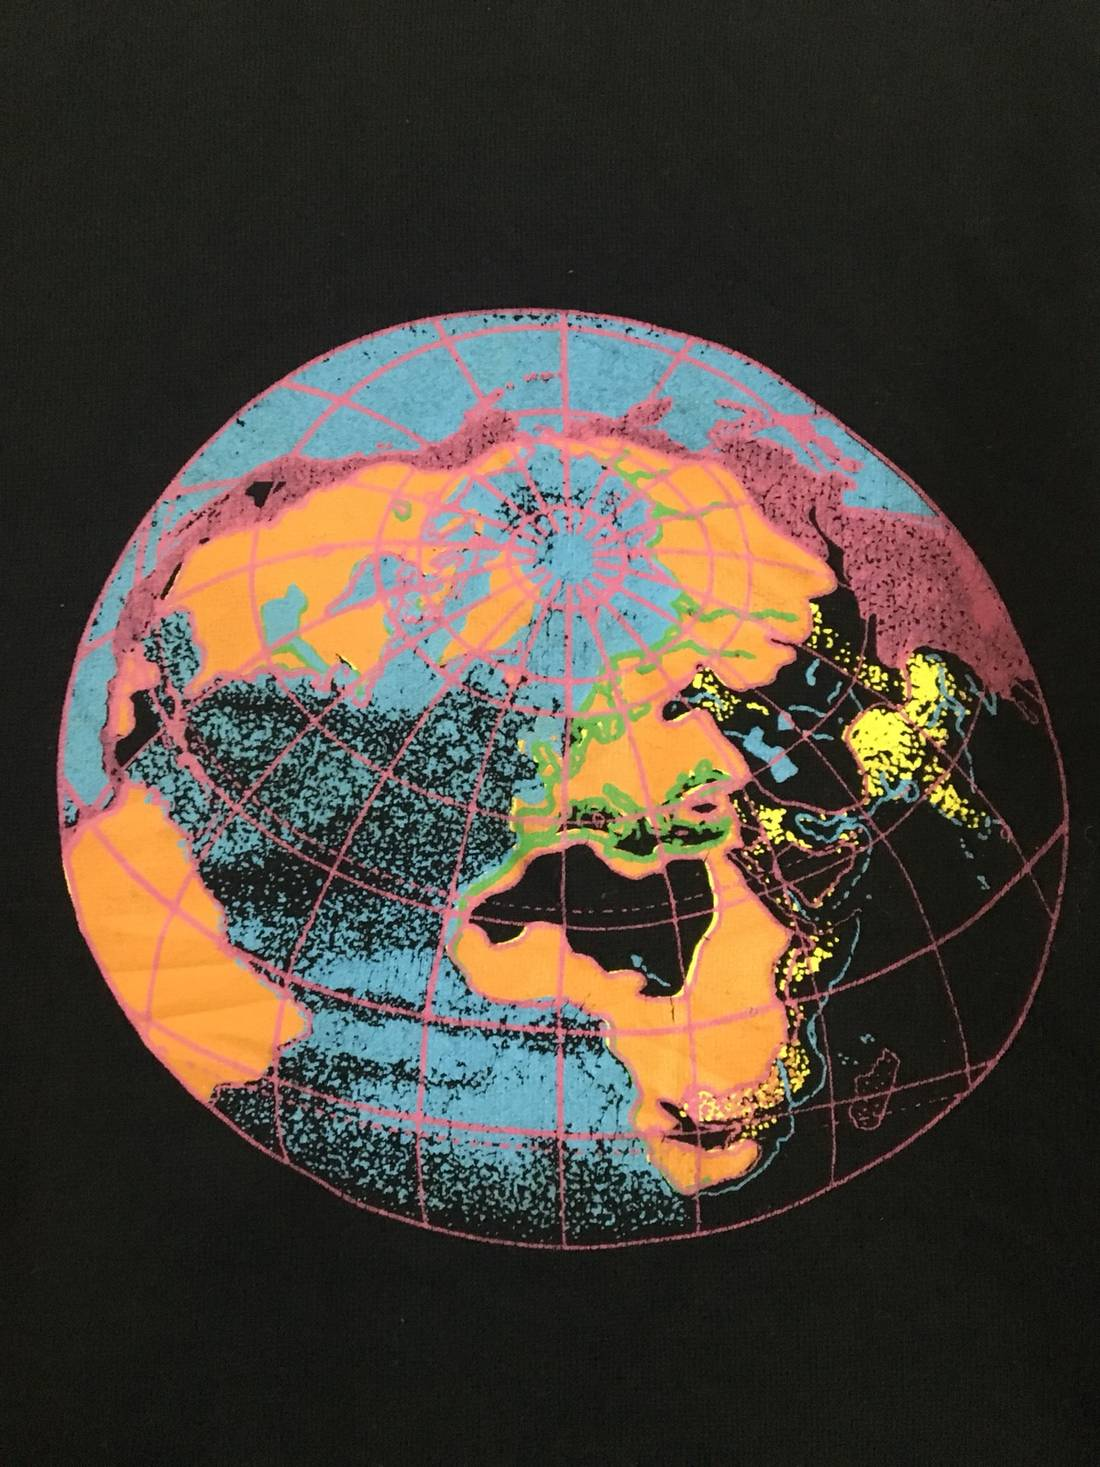 Dolce gabbana dolce gabbana black pullover sweatshirt world dolce gabbana dolce gabbana black pullover sweatshirt world map sicilia design gumiabroncs Image collections